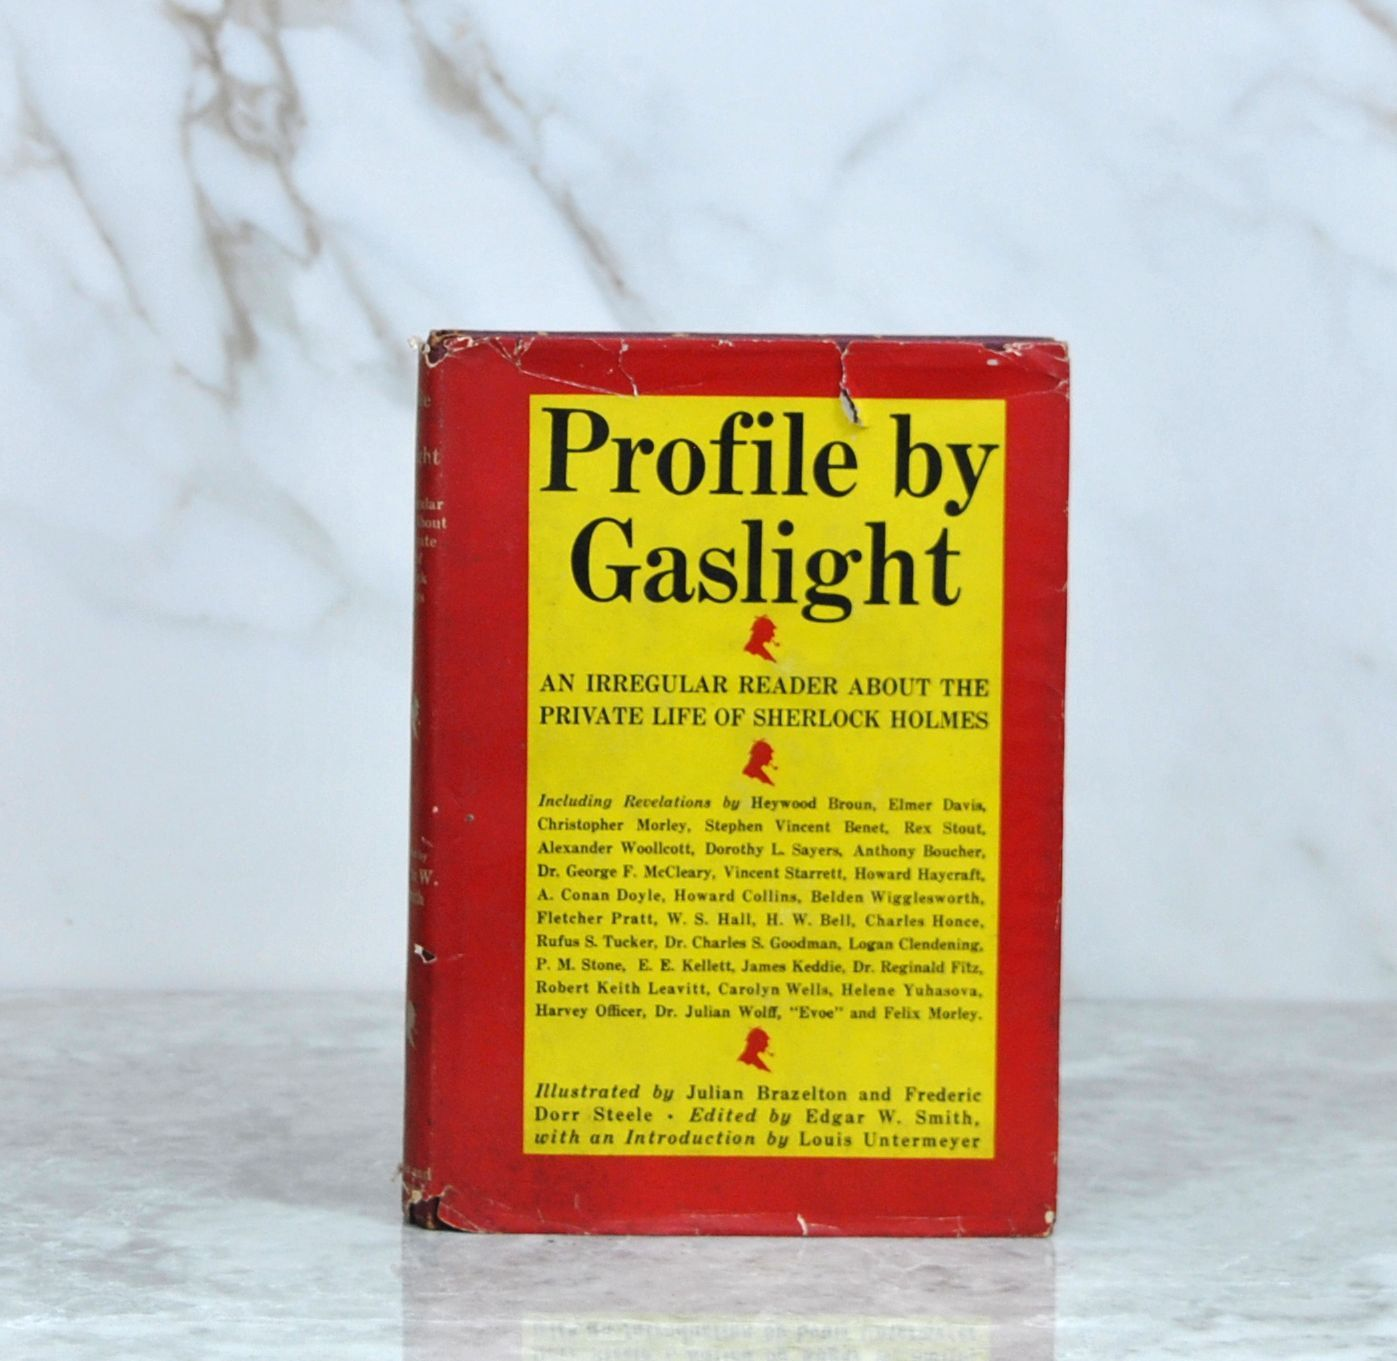 Vintage Profile by Gaslight: An Irregular Reader About the Private Life of Sherlock Holmes (First Printing) 1944 Simon & Schuster – Crime